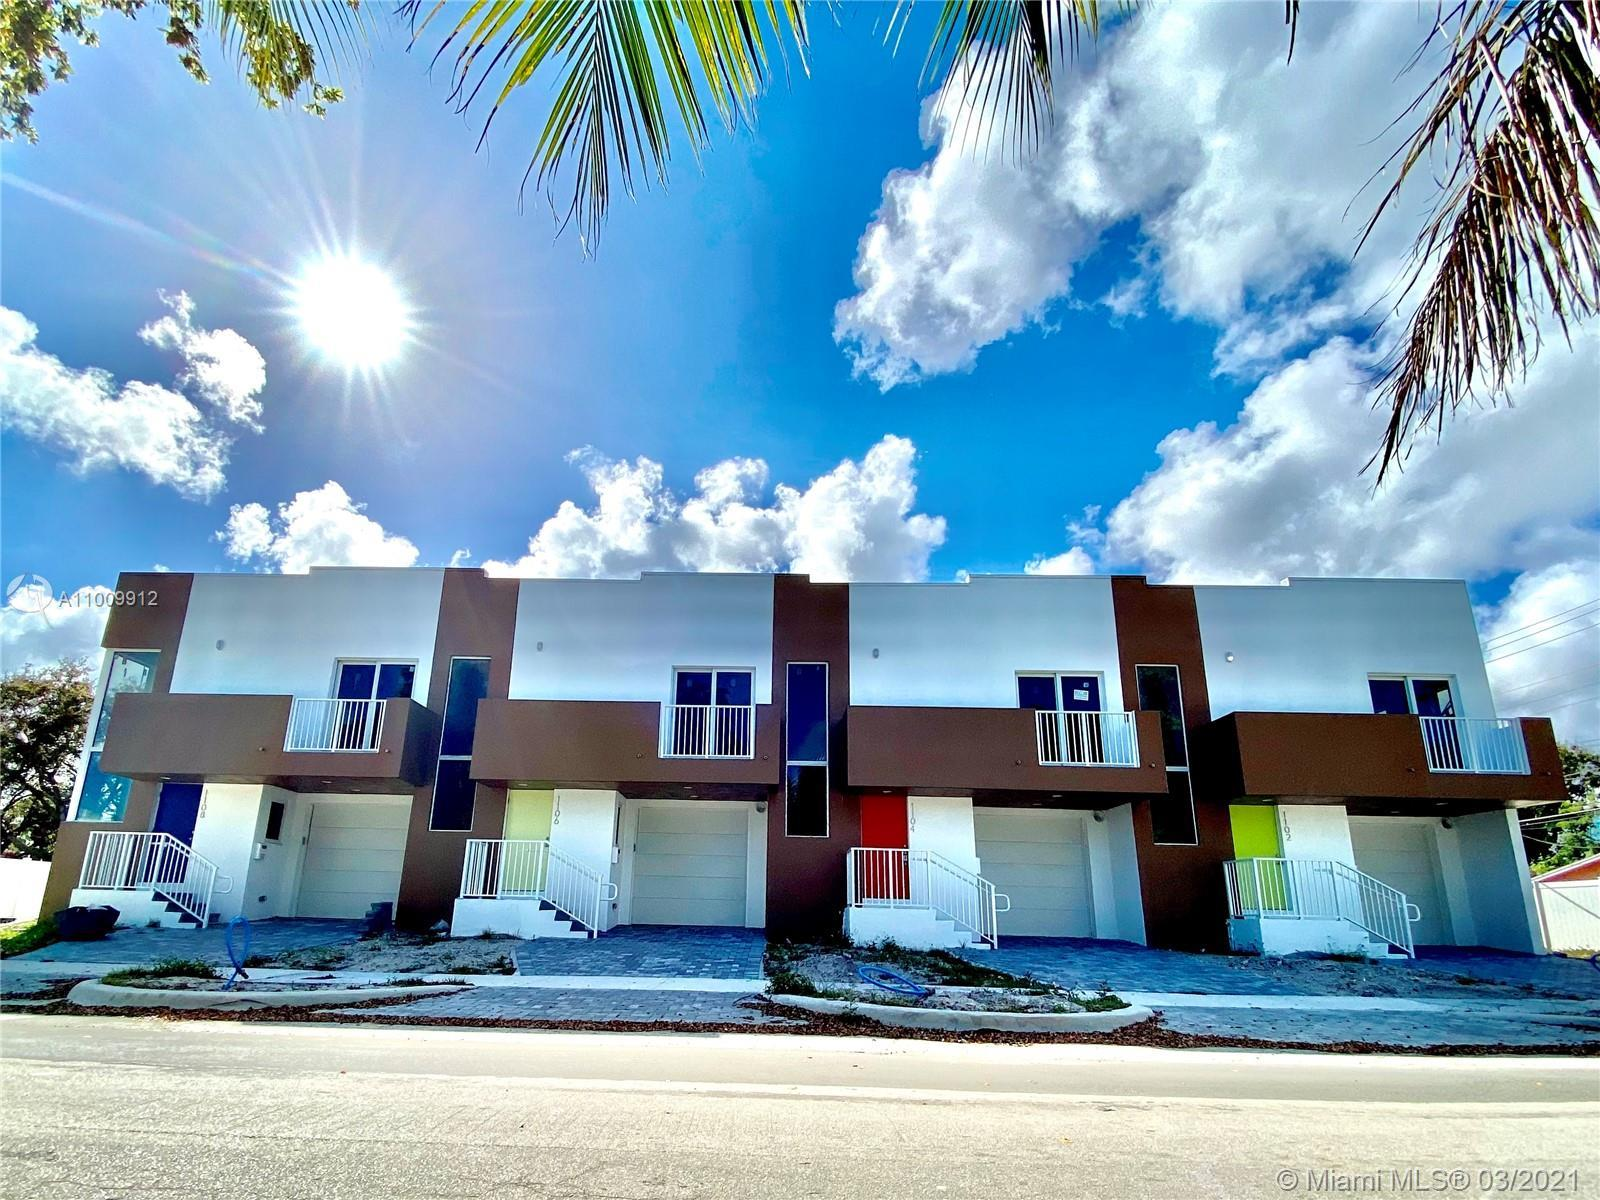 The splendid & spacious townhouse offers a split floor plan with 3 bedrooms - 2 baths on the upper f